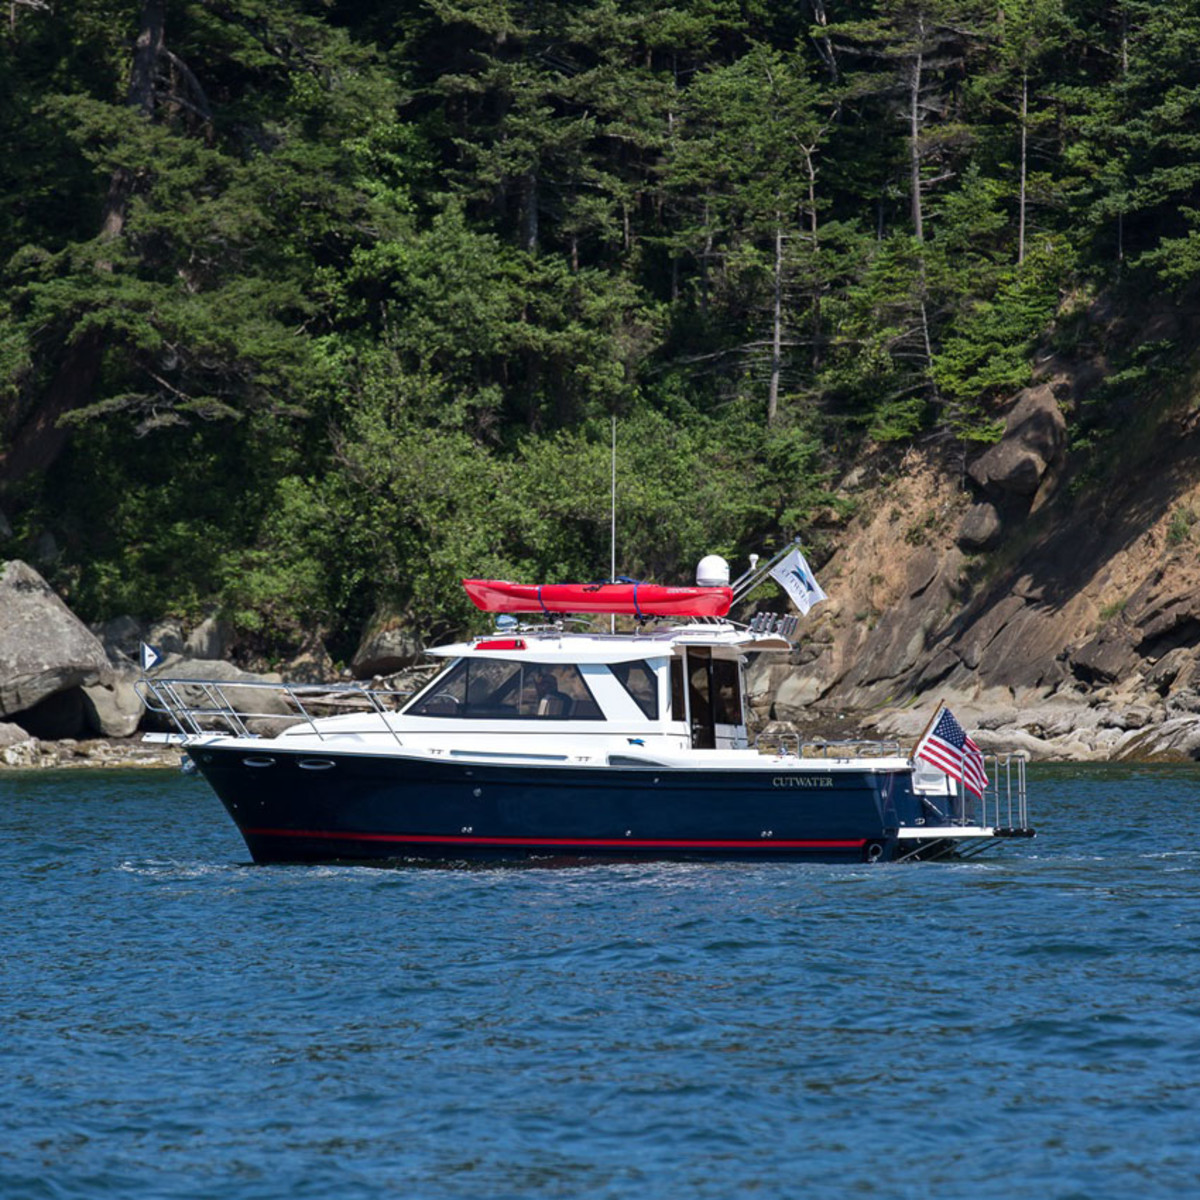 The Cutwater 28, one of many Cutwater boats that will be on display.